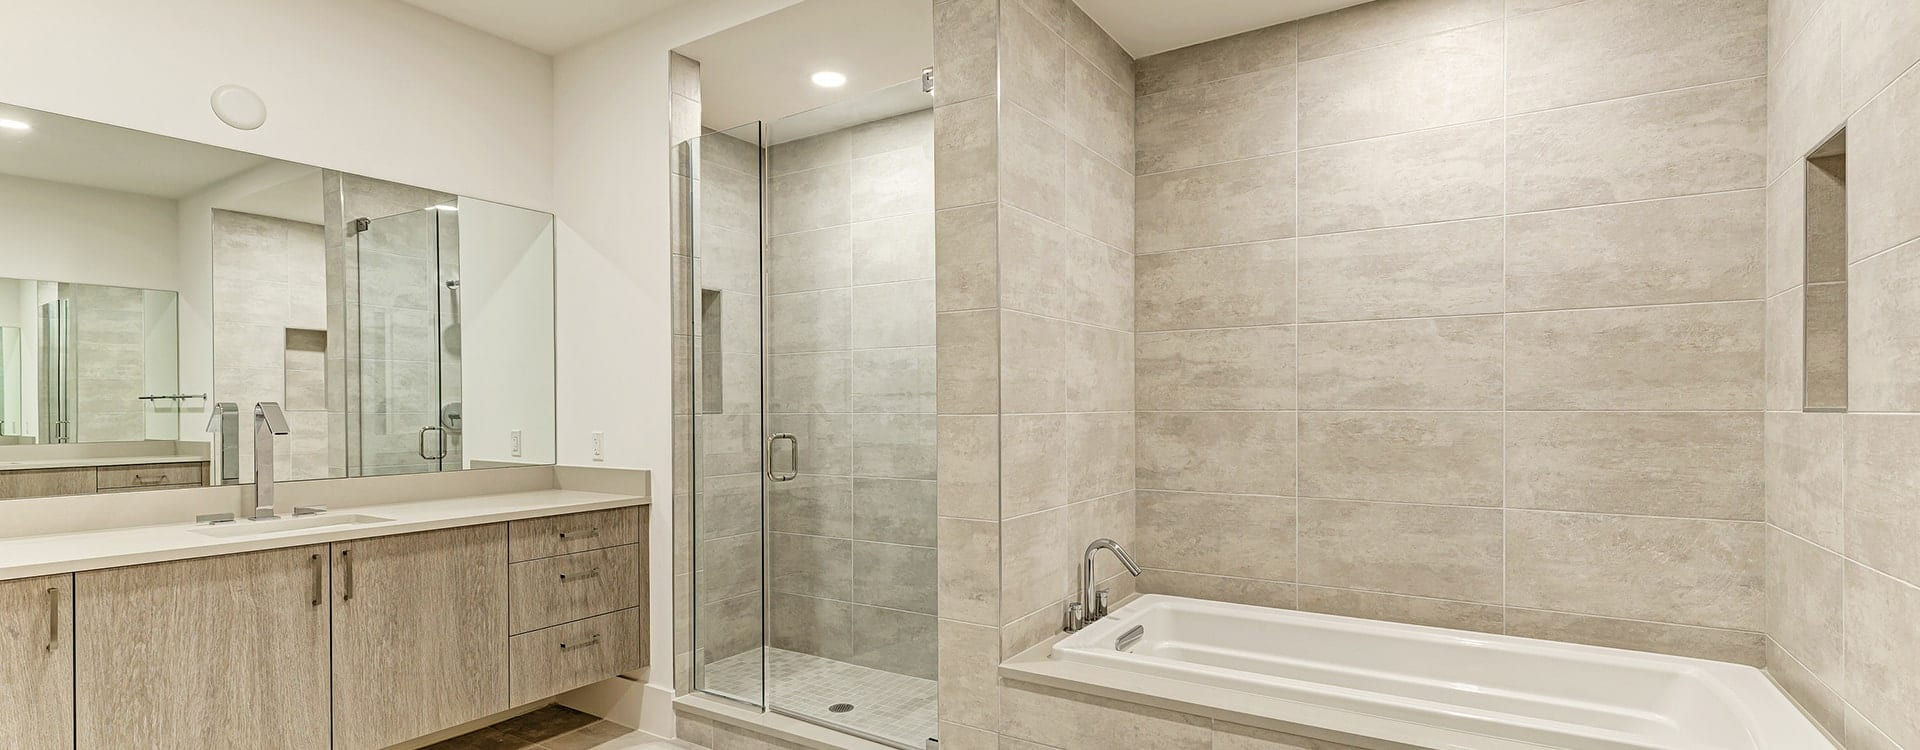 shower and tub in BLVD Sarasota Residence 1702